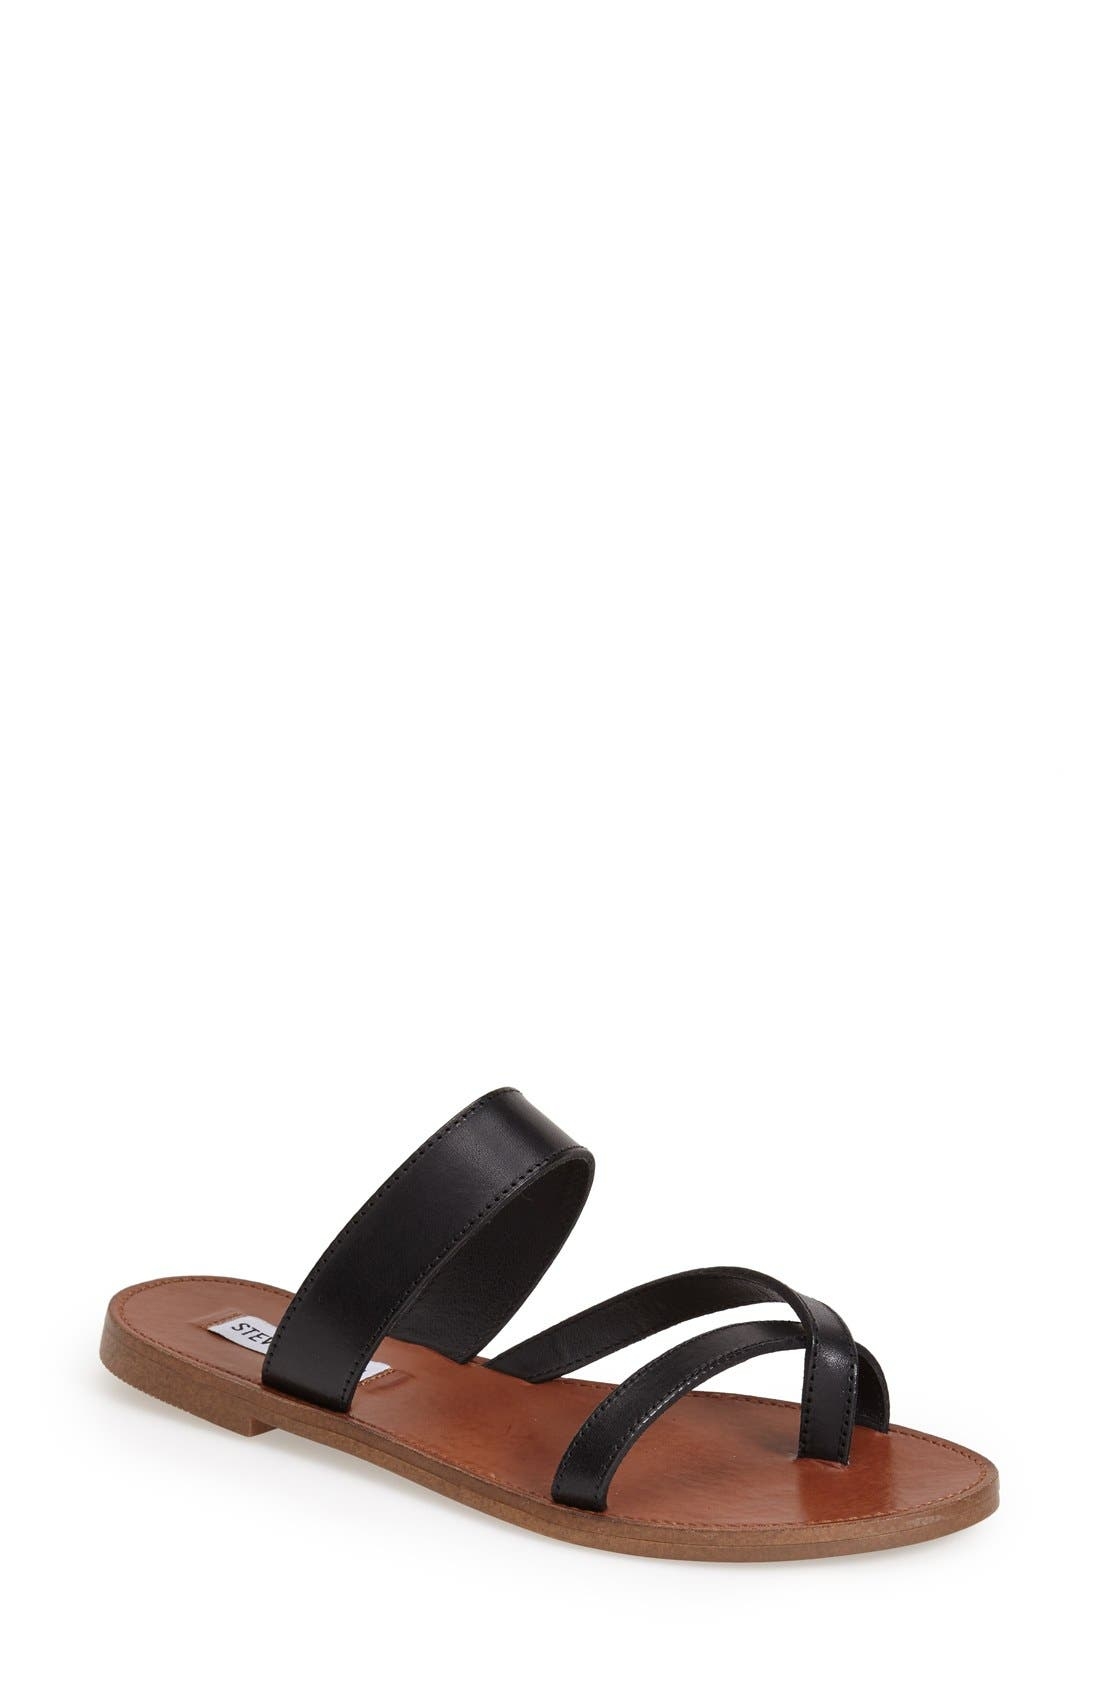 'Aintso' Strappy Leather Toe Ring Sandal,                             Main thumbnail 1, color,                             001